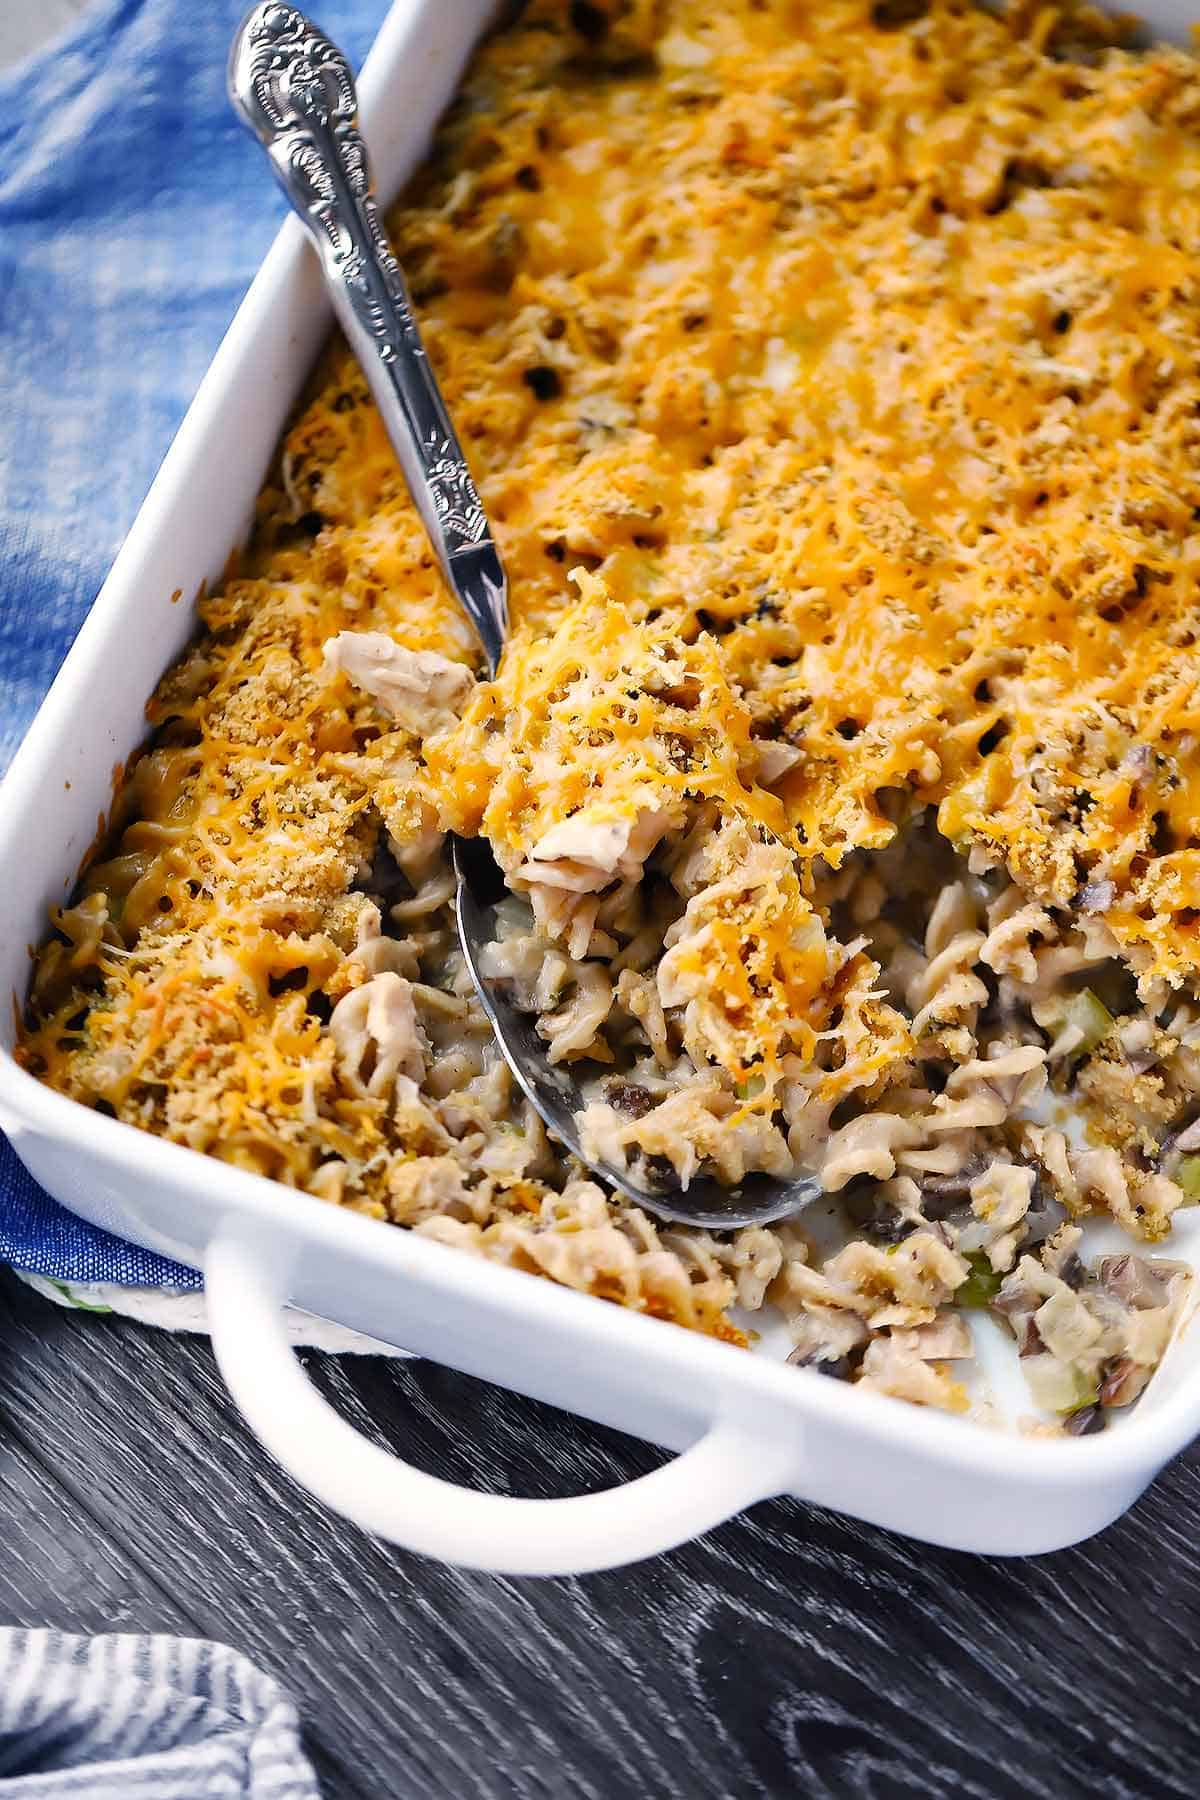 This tuna casserole is the ultimate creamy, warm comfort food. Made with 100% real, unprocessed ingredients. Make two and freeze one!